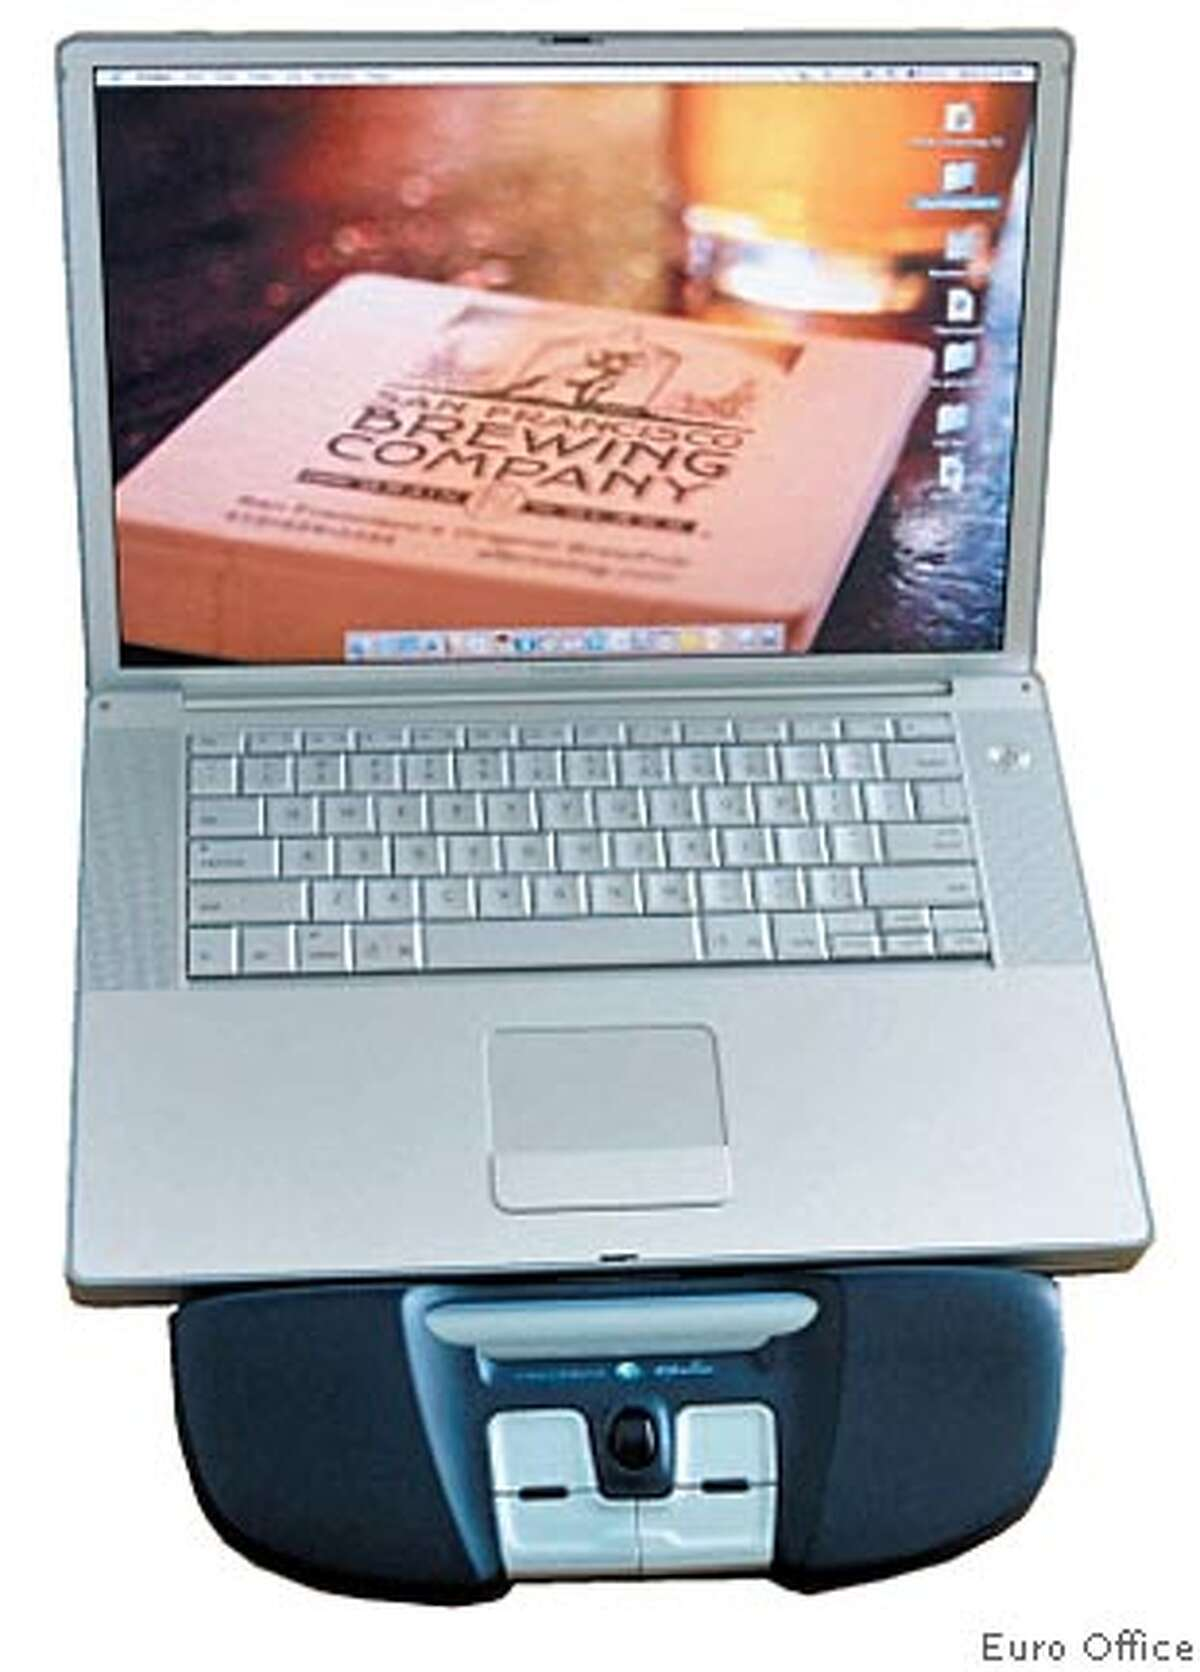 The Trackbar Emotion sits between user and laptop to reduce strain of reaching. Photo courtesy of Euro Office